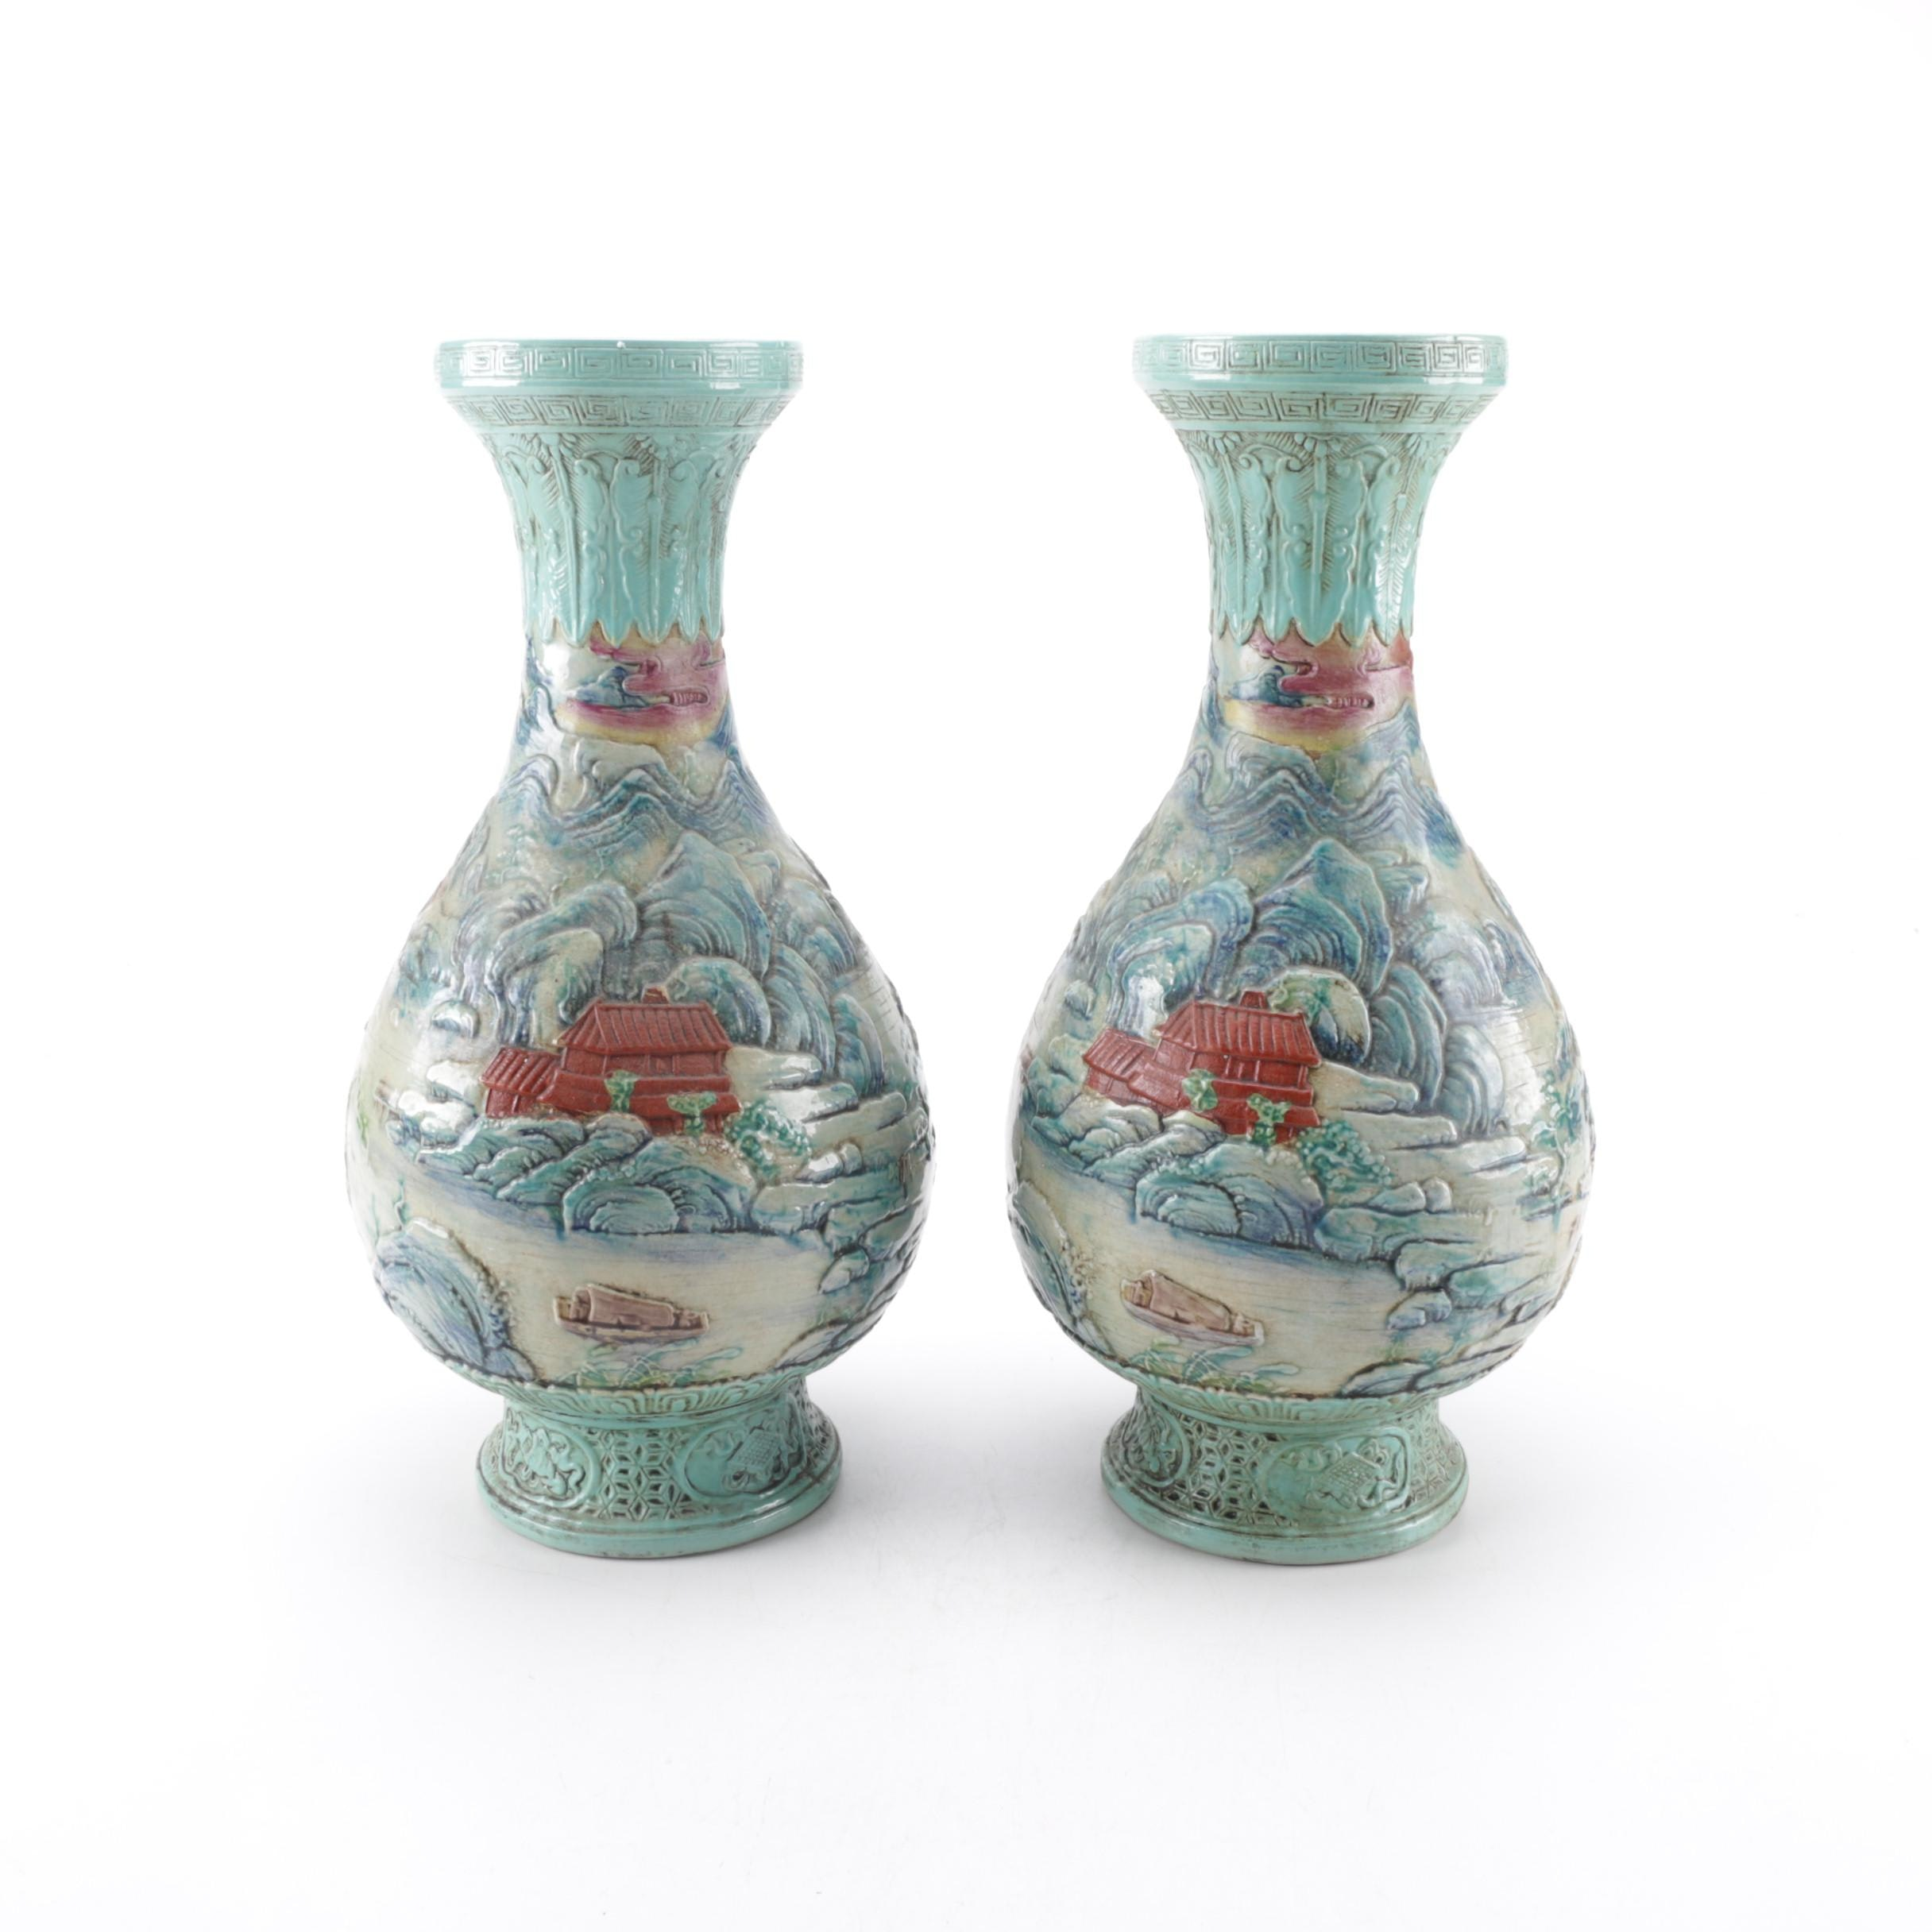 Pair of Asian Style Pear Shaped Vases